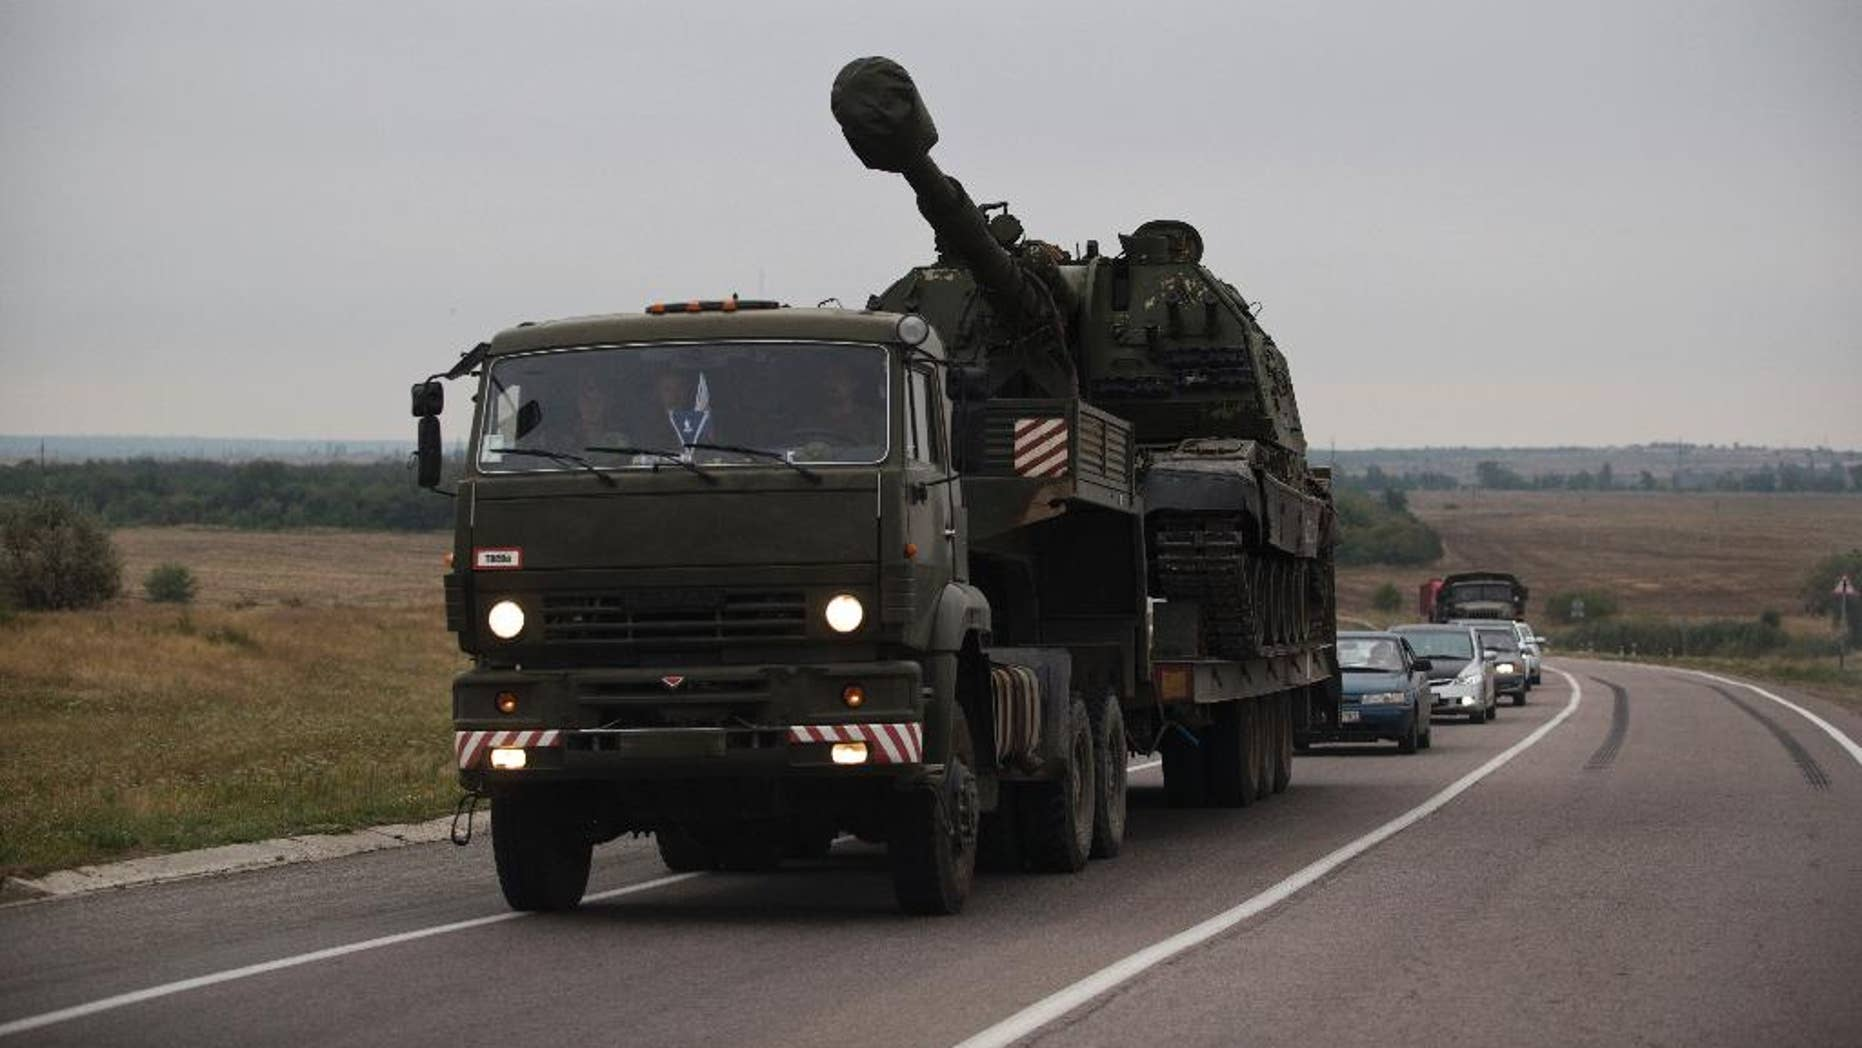 A Russian military truck carries a MSTA-S self-propelled howitzer about 10 kilometers from the Russia-Ukrainian border control point at town Donetsk, Rostov-on-Don region, Russia, Tuesday, Aug. 19, 2014. Ukrainian government troops were fighting pro-Russian rebels in the streets of Luhansk on Tuesday and captured most of a town near the eastern city of Donetsk, tightening the noose around that key rebel-held stronghold, Ukrainian officials said. (AP Photo/Pavel Golovkin)